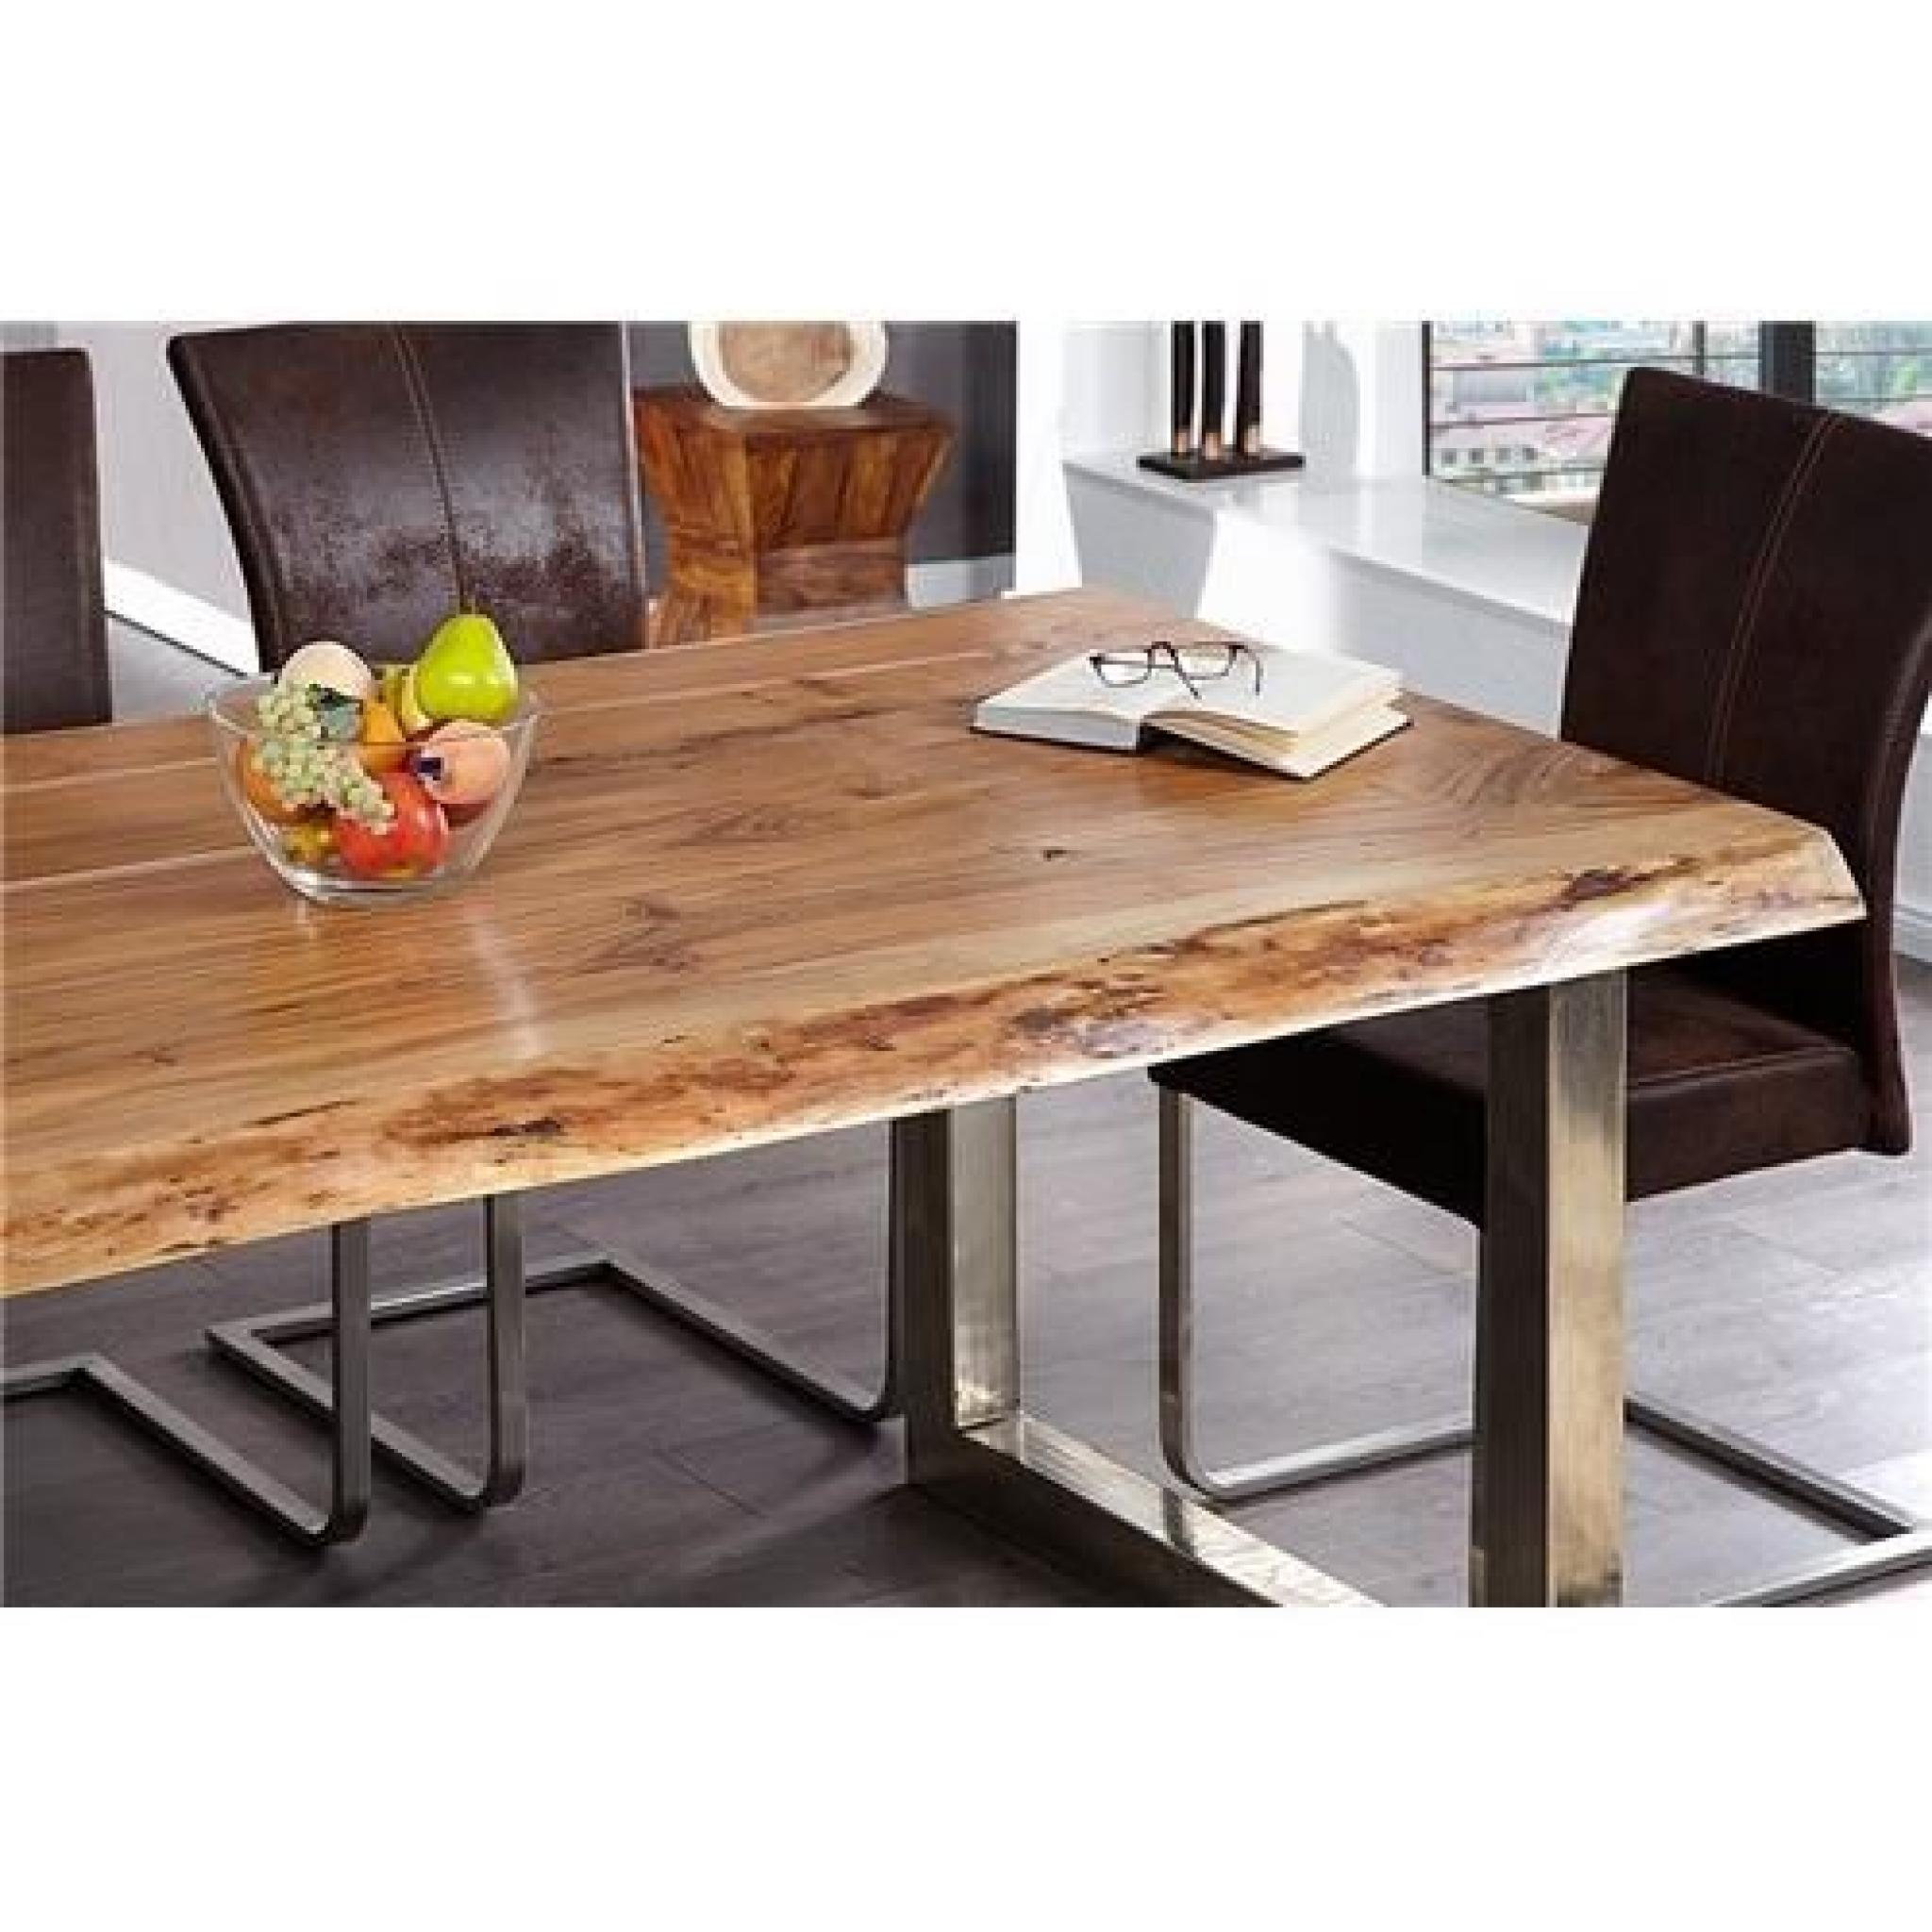 Table design akazio bois achat vente table salle a manger pas cher couleu - Table up and down pas cher ...